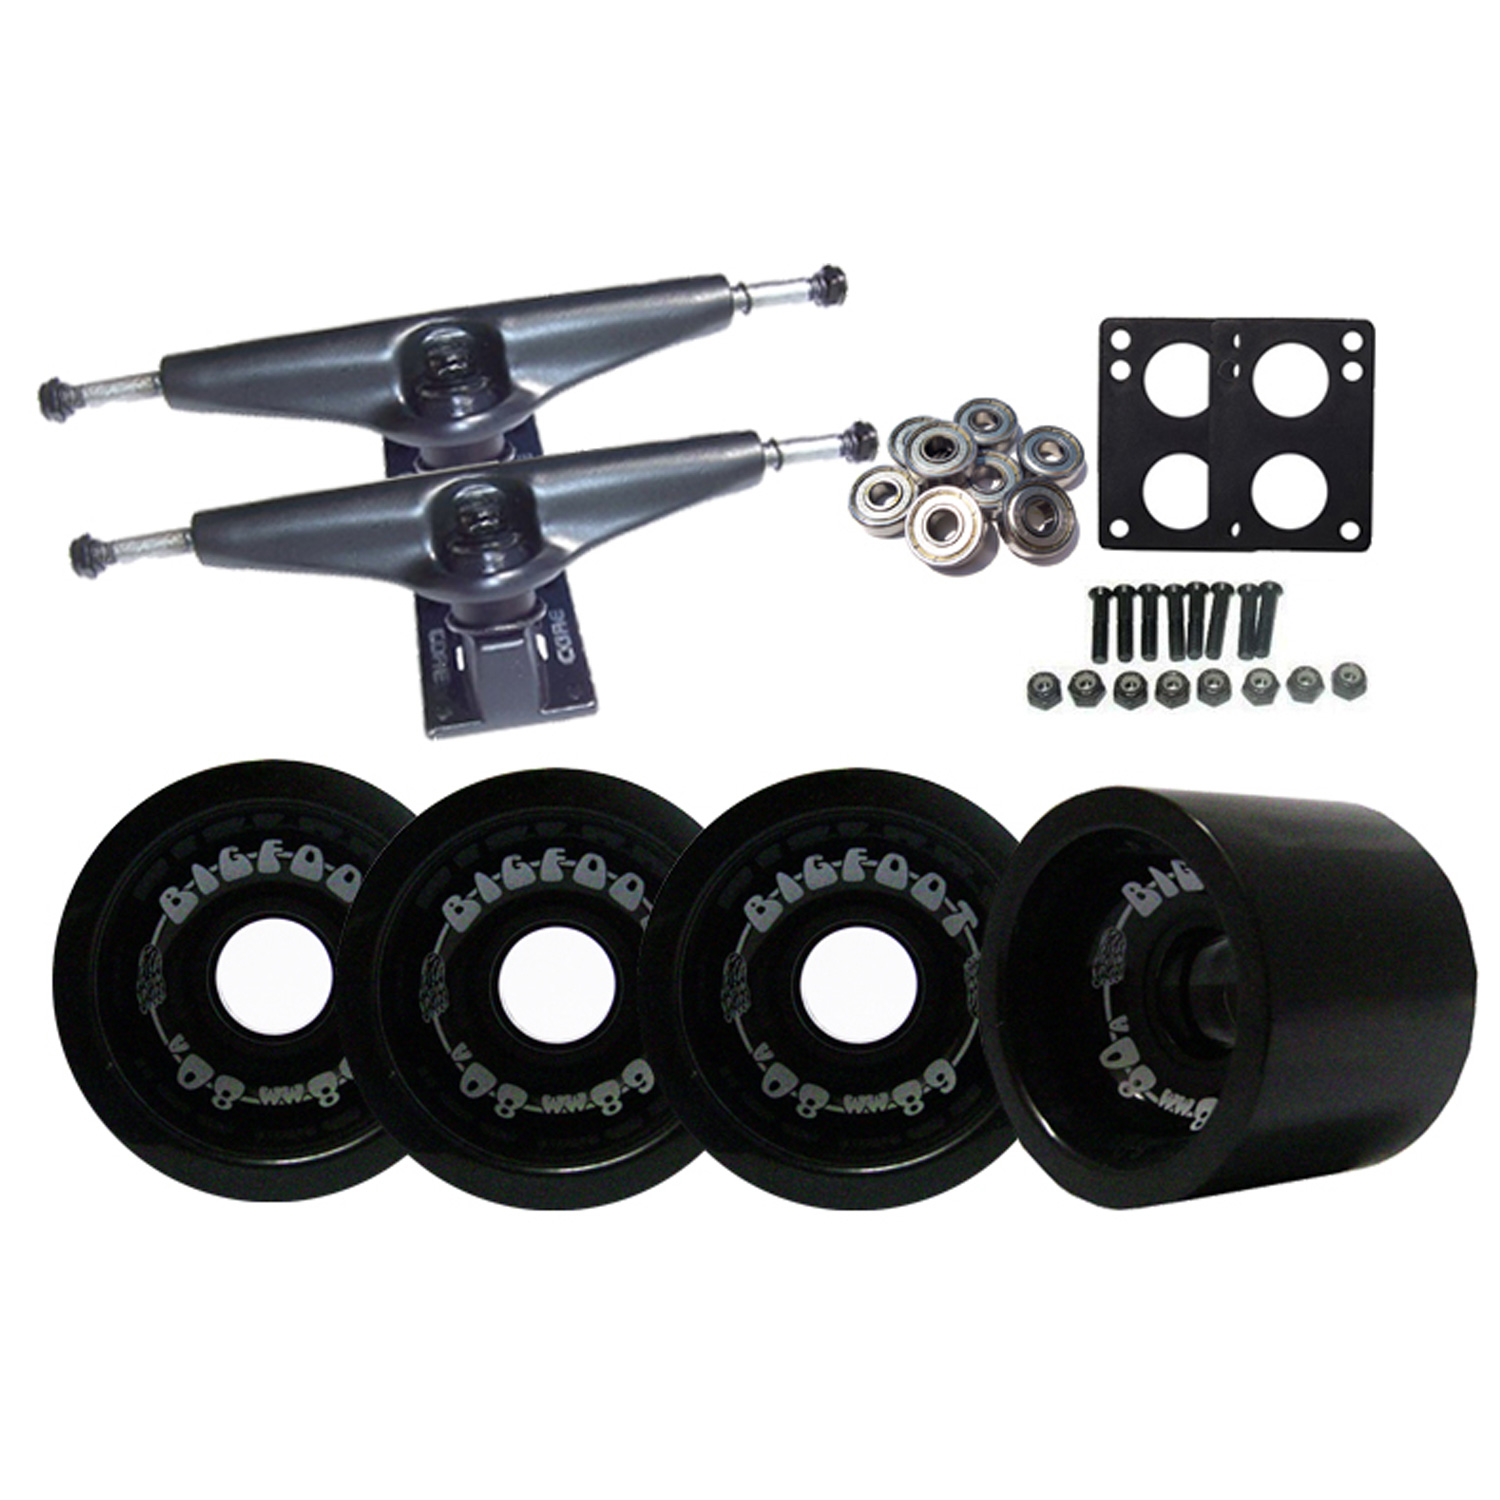 BLACK Skateboard LONGBOARD TRUCKS BIGFOOT 80a WHEELS